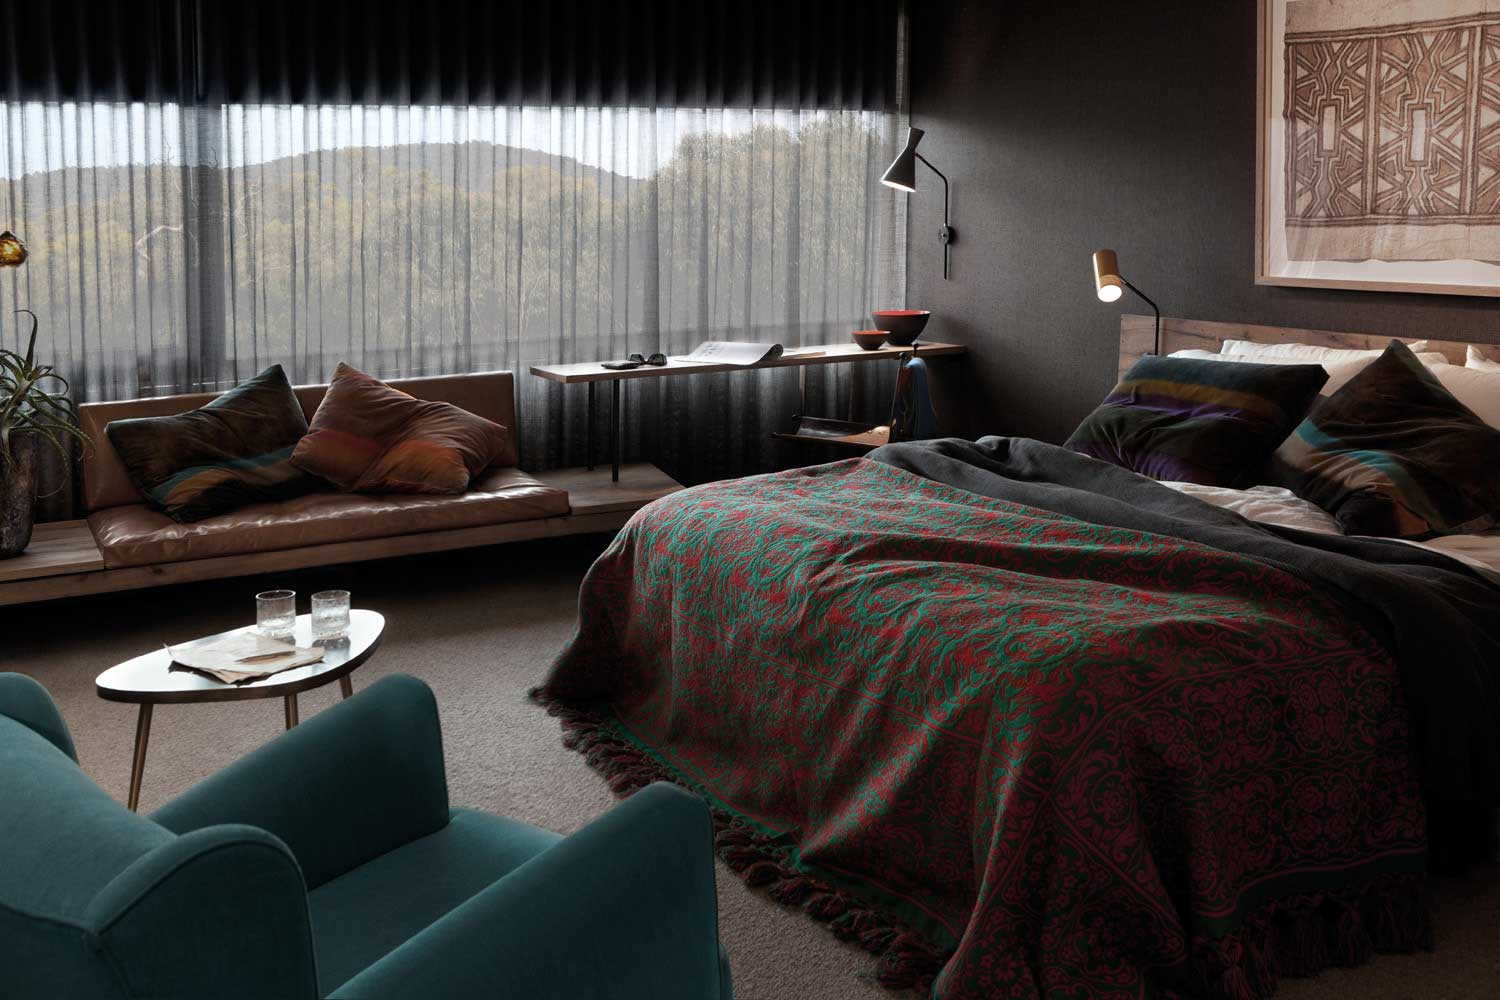 Hotel Hotel, Canberra | Yellowtrace